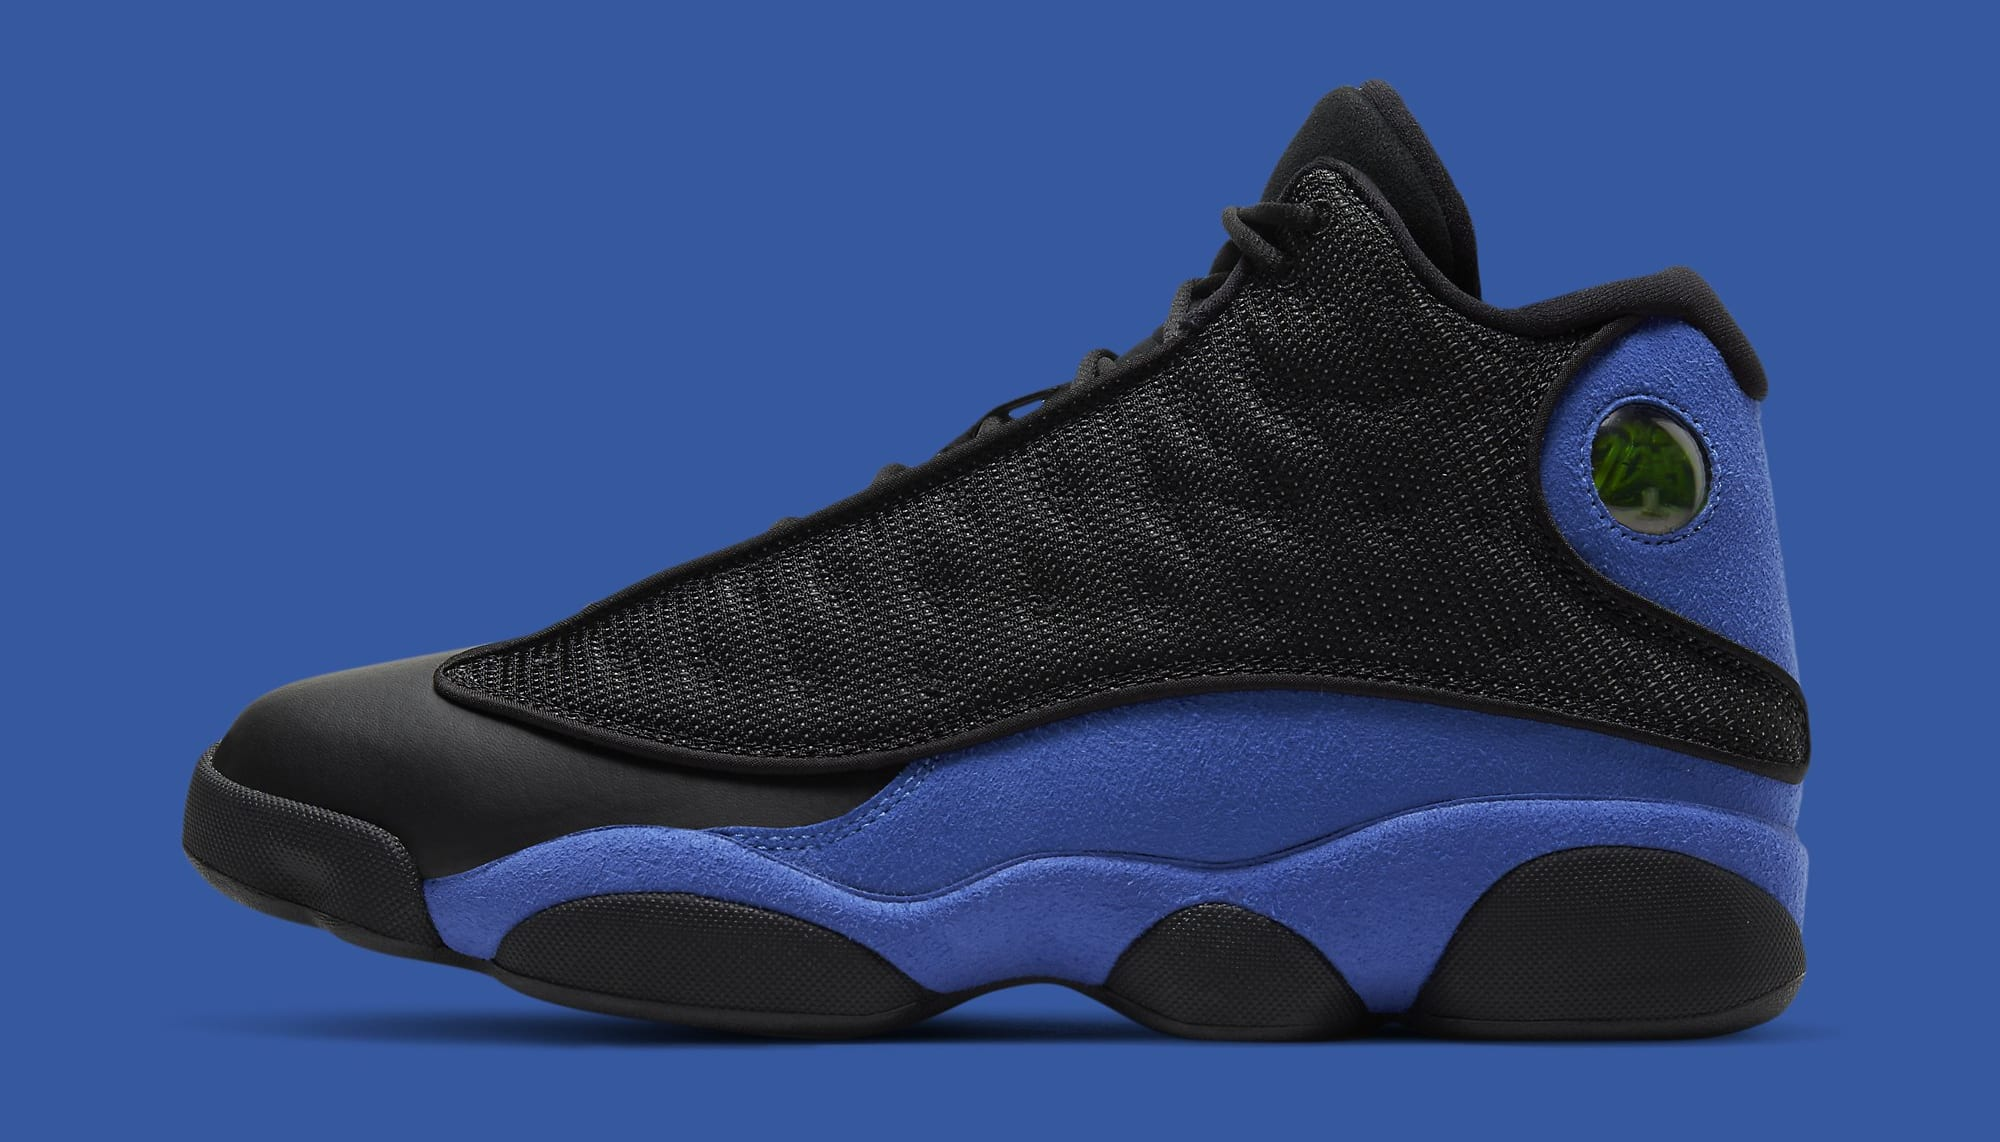 Air Jordan 13 Retro 'Hyper Royal' 414571-040 Lateral